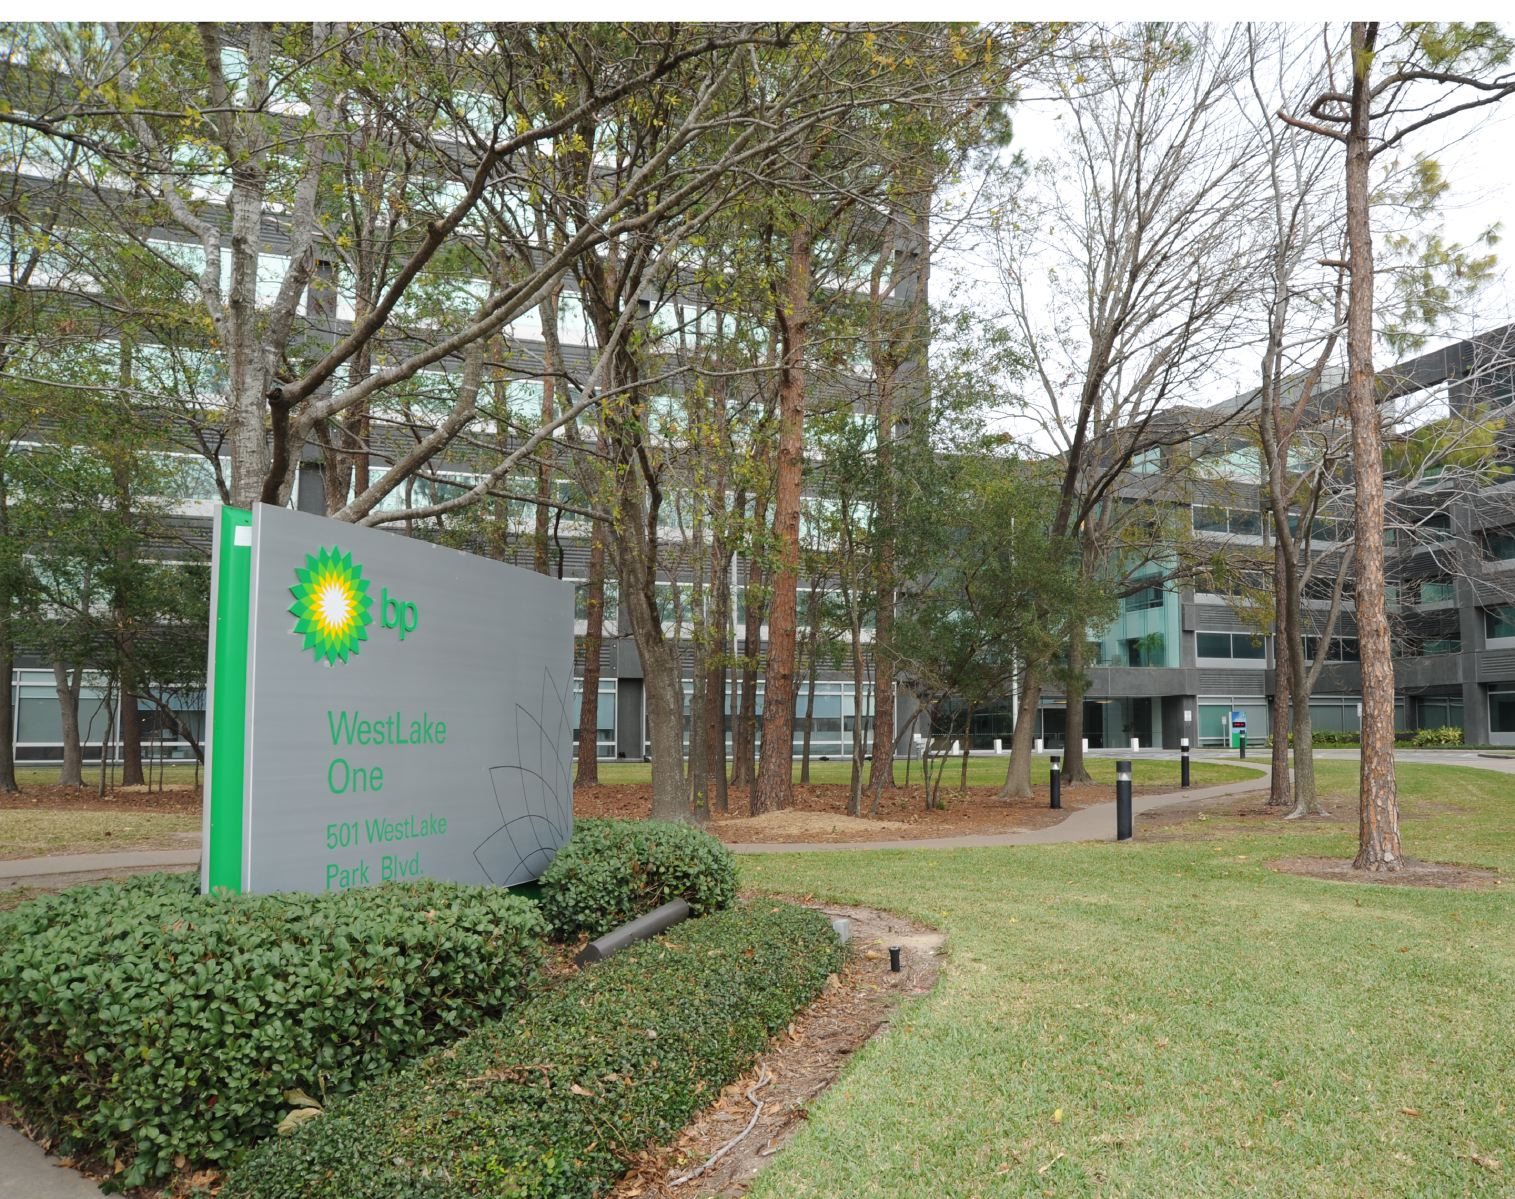 BP formerly known as British Petroleum has